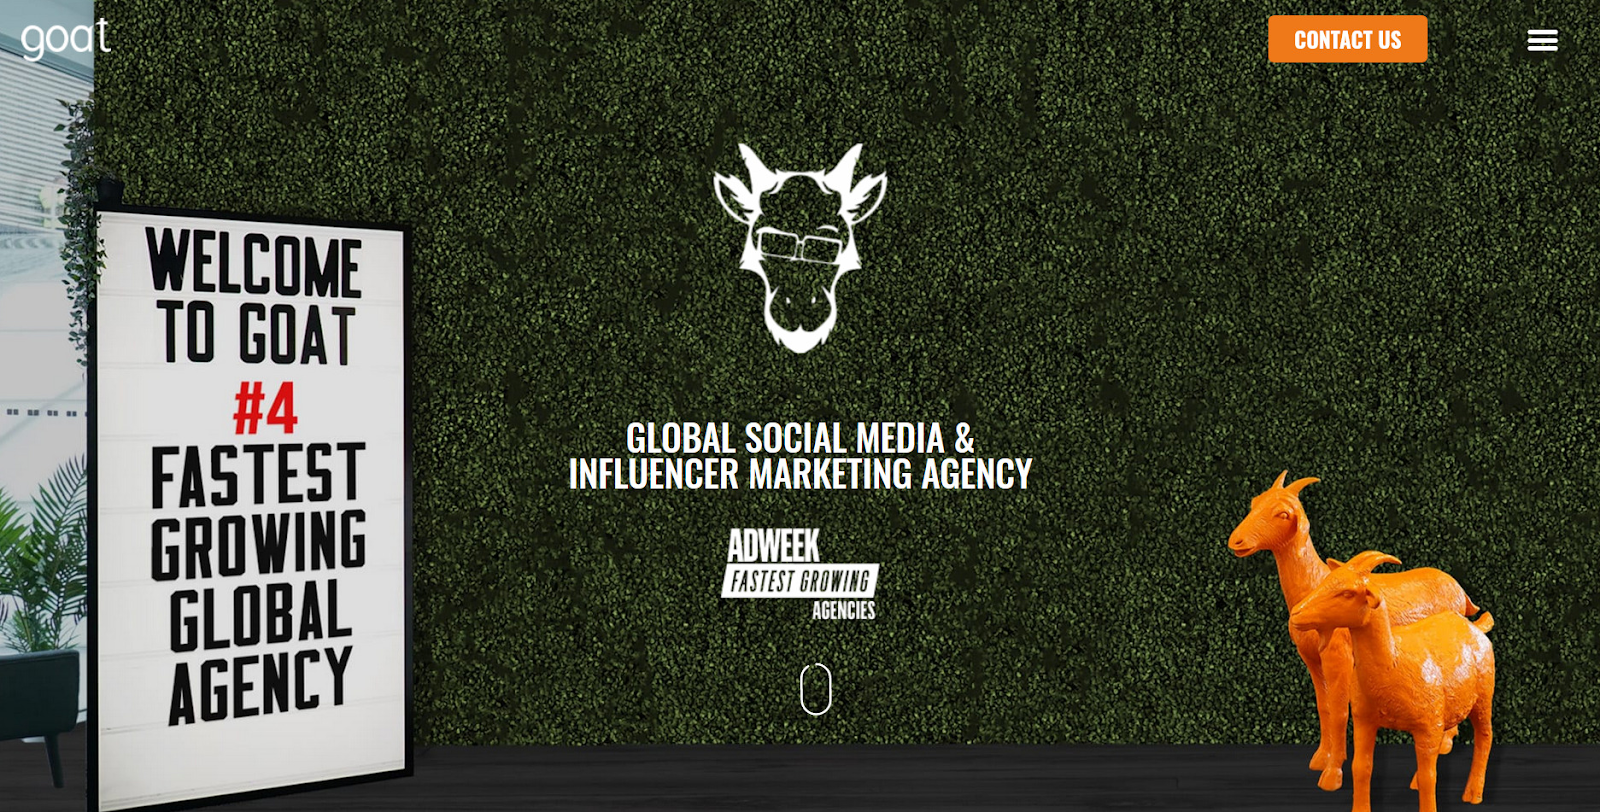 The Goat. Top influencer marketing agency 2021